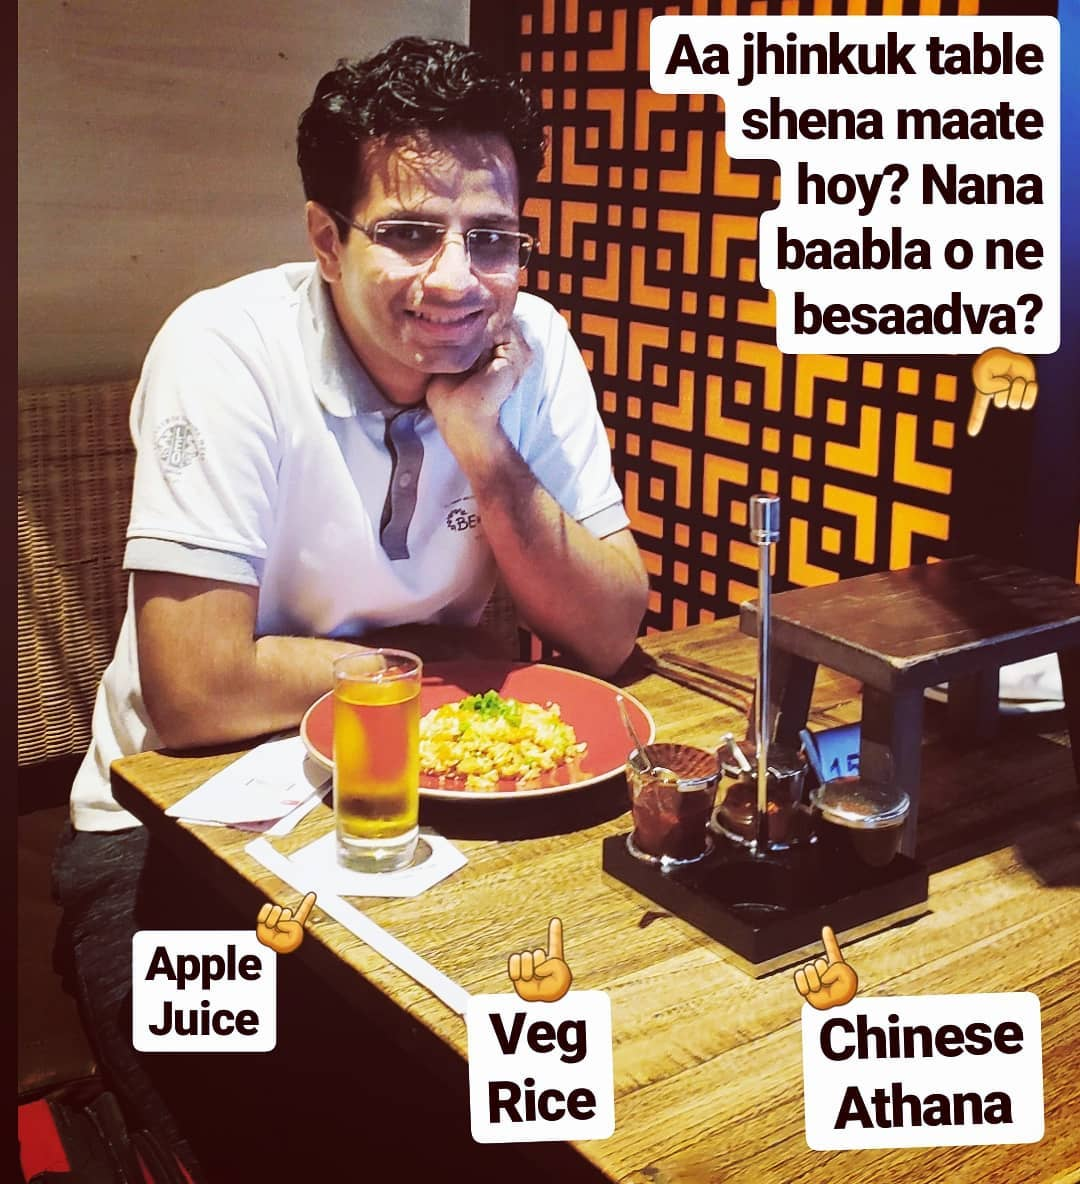 Airport layover lunch 🥣🍹with some clarifications & some questions 😄 . #dubai #airport #lunch #food #rice #applejuice #asian #meal #foodie #lunchtime #asianfood #food #juice #ricebowl #foodphotography #lunchideas #funny #OjasRawal #ojas #actor #airportlife #airportdiaries #dubaiairport #instafood #instafoodie #smile #foodfun #funfood #foodstagram #healthyfood